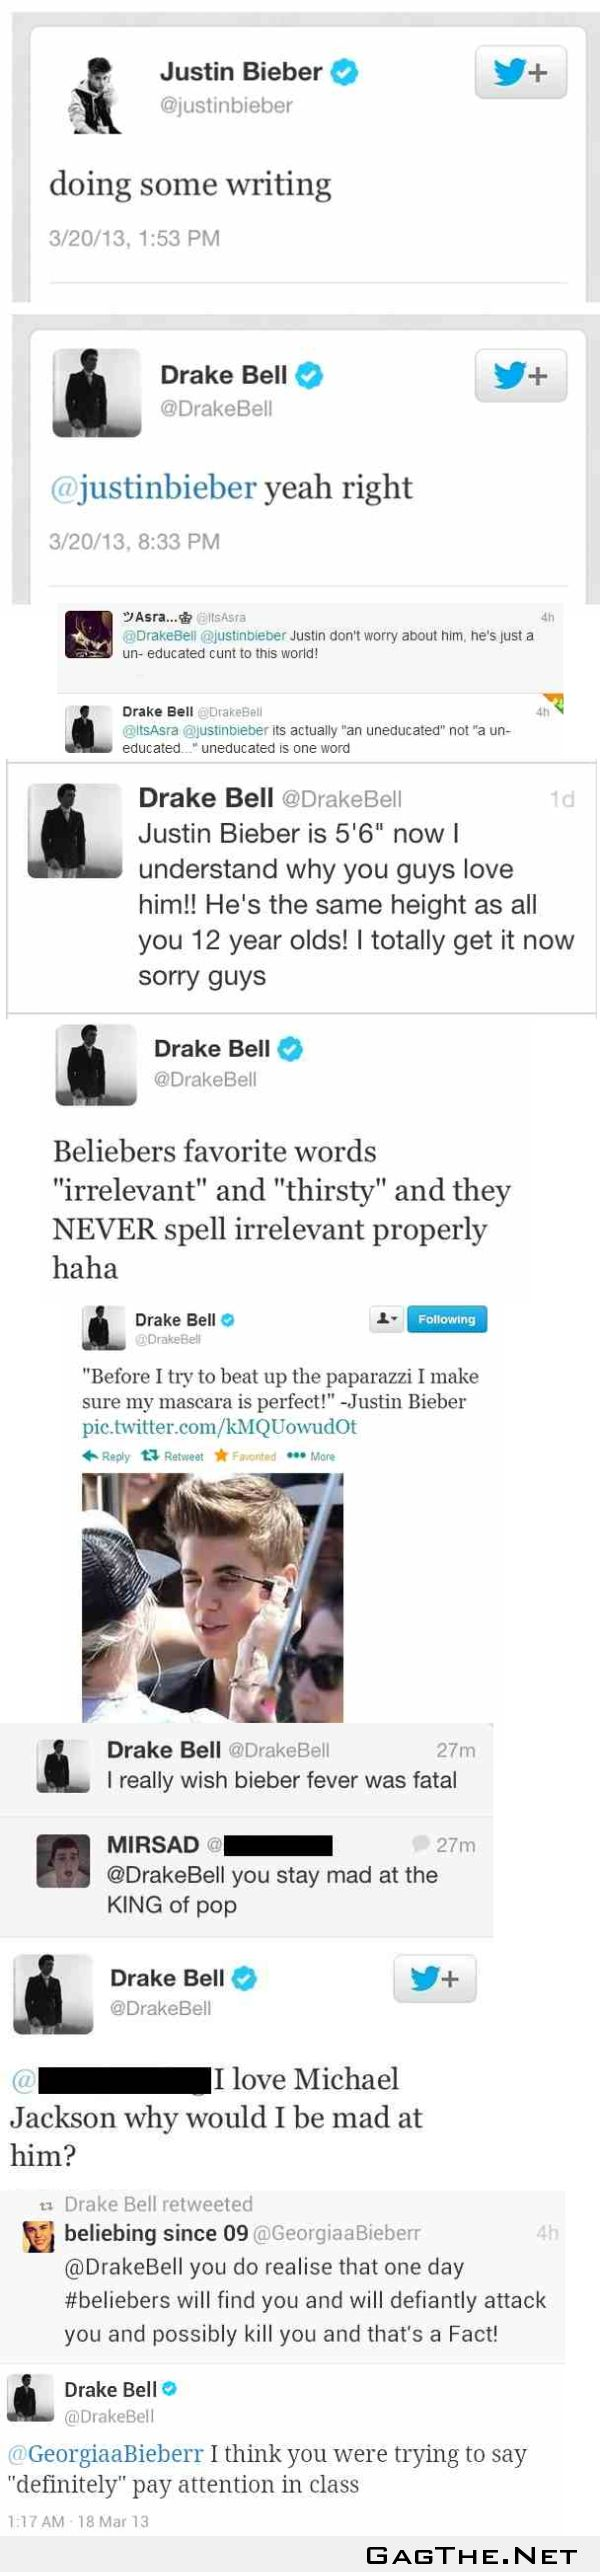 Ladies and gentlemen, Drake Bell. *stands up and slowly claps*